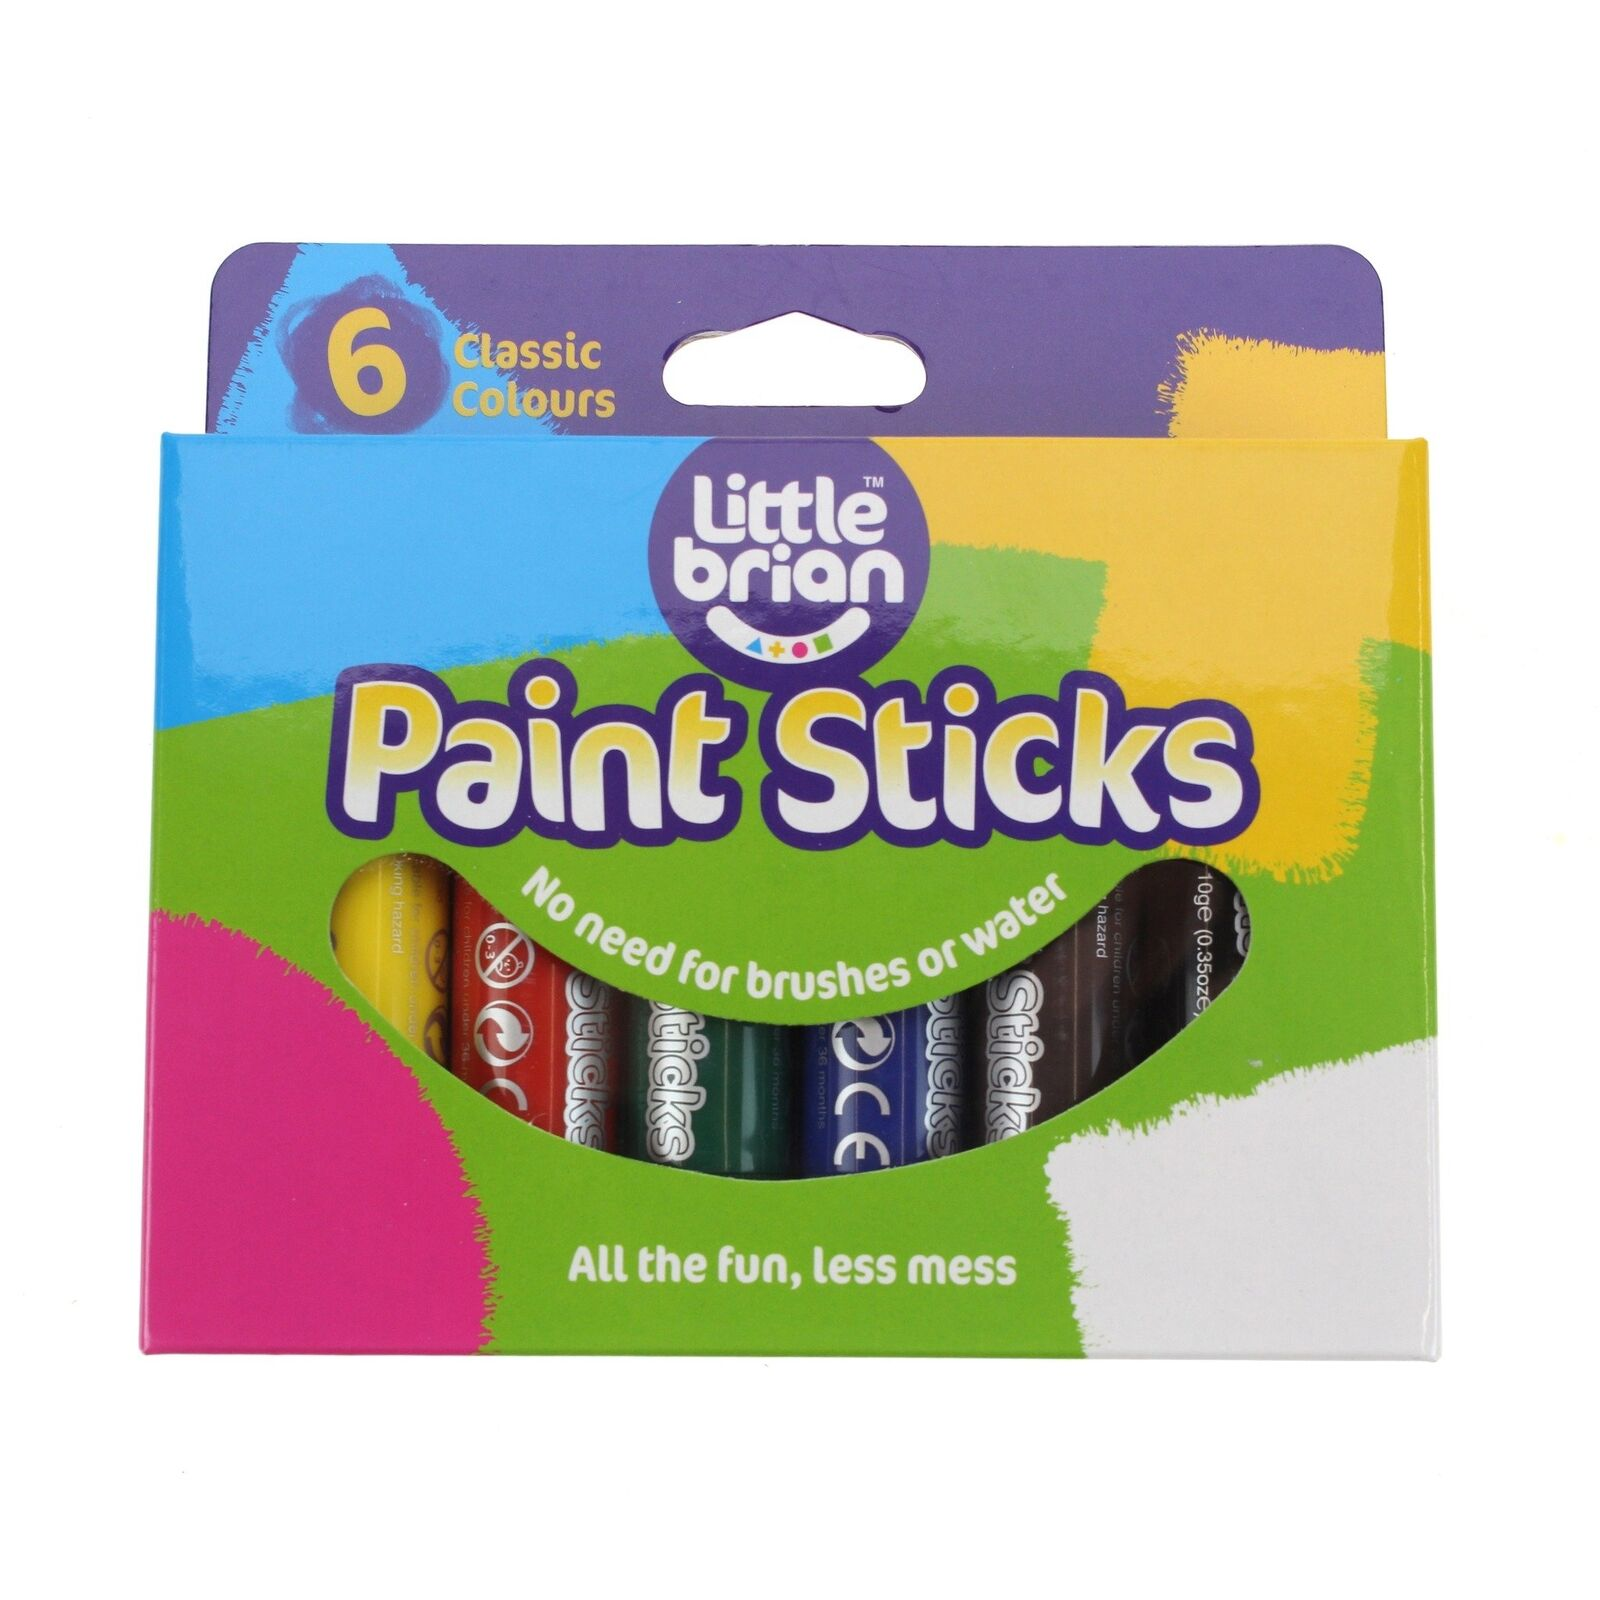 Little Brian LBPS10CA6 Classic Colours Paint Sticks (pack of 6) | eBay